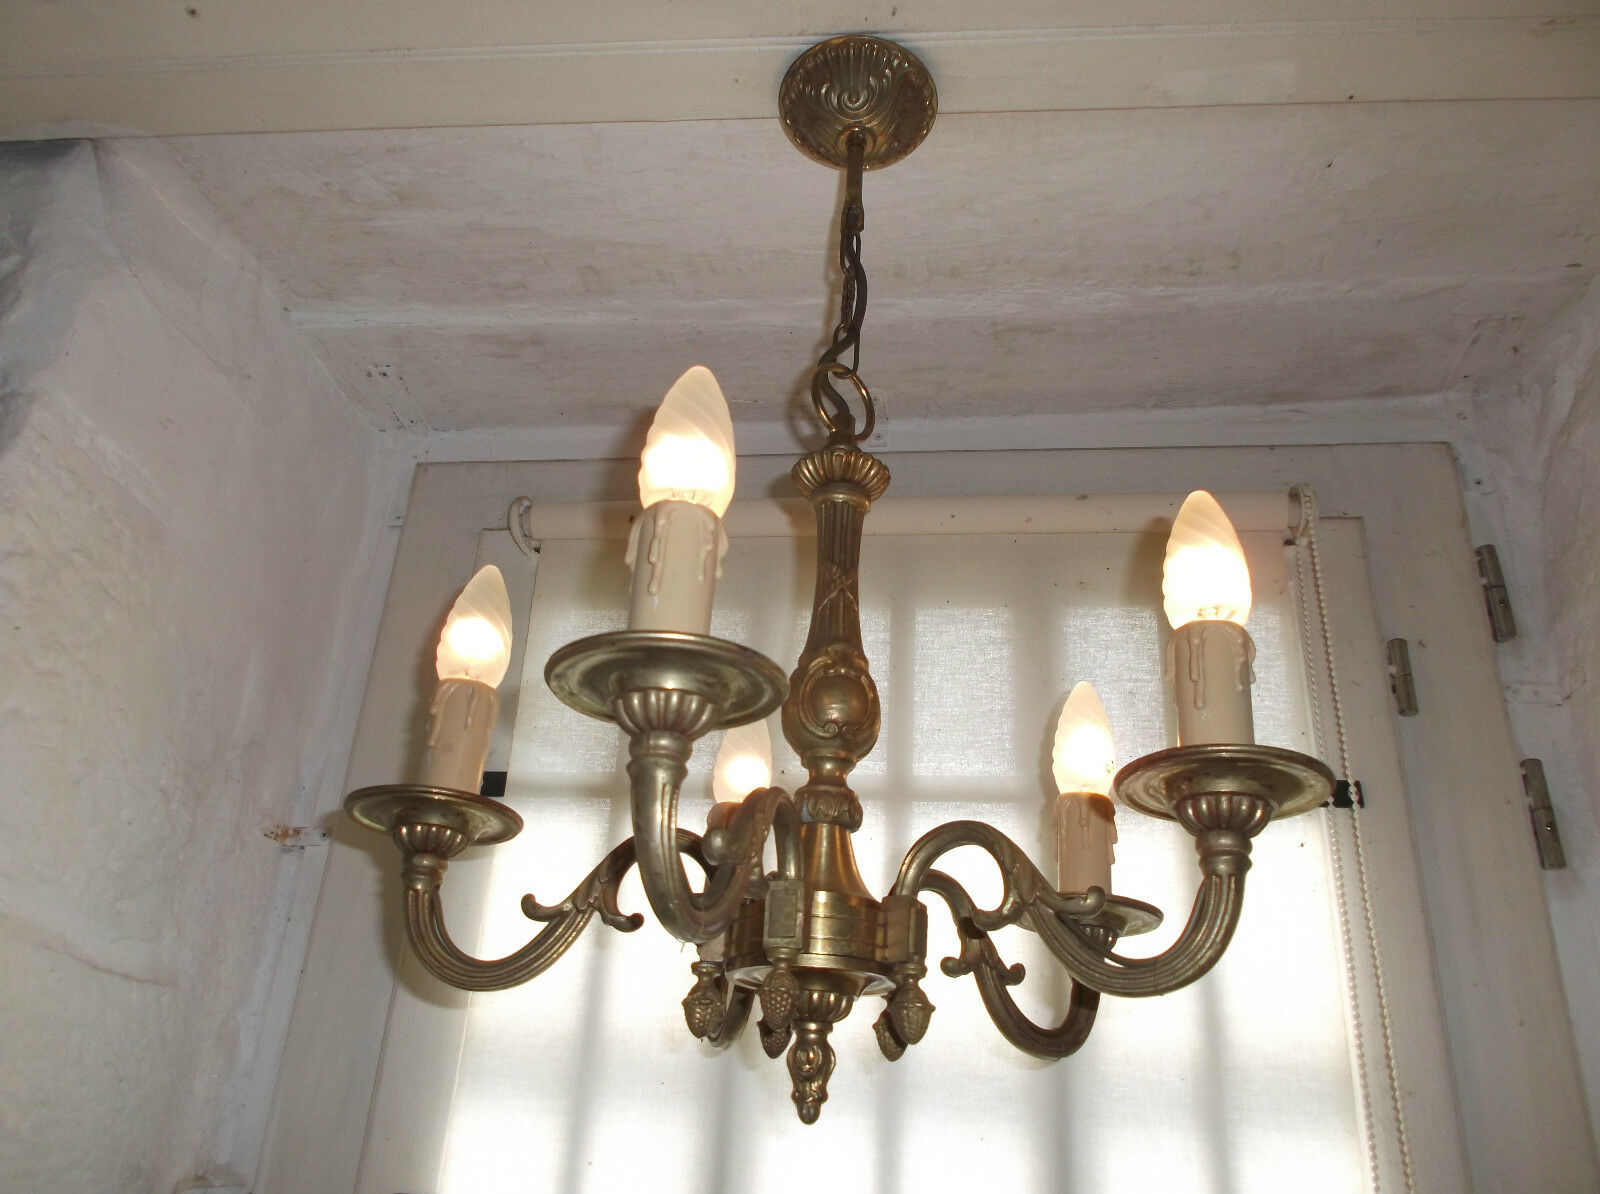 French chandelier 5 lights ornate patina bronze beautifully detailed vintage